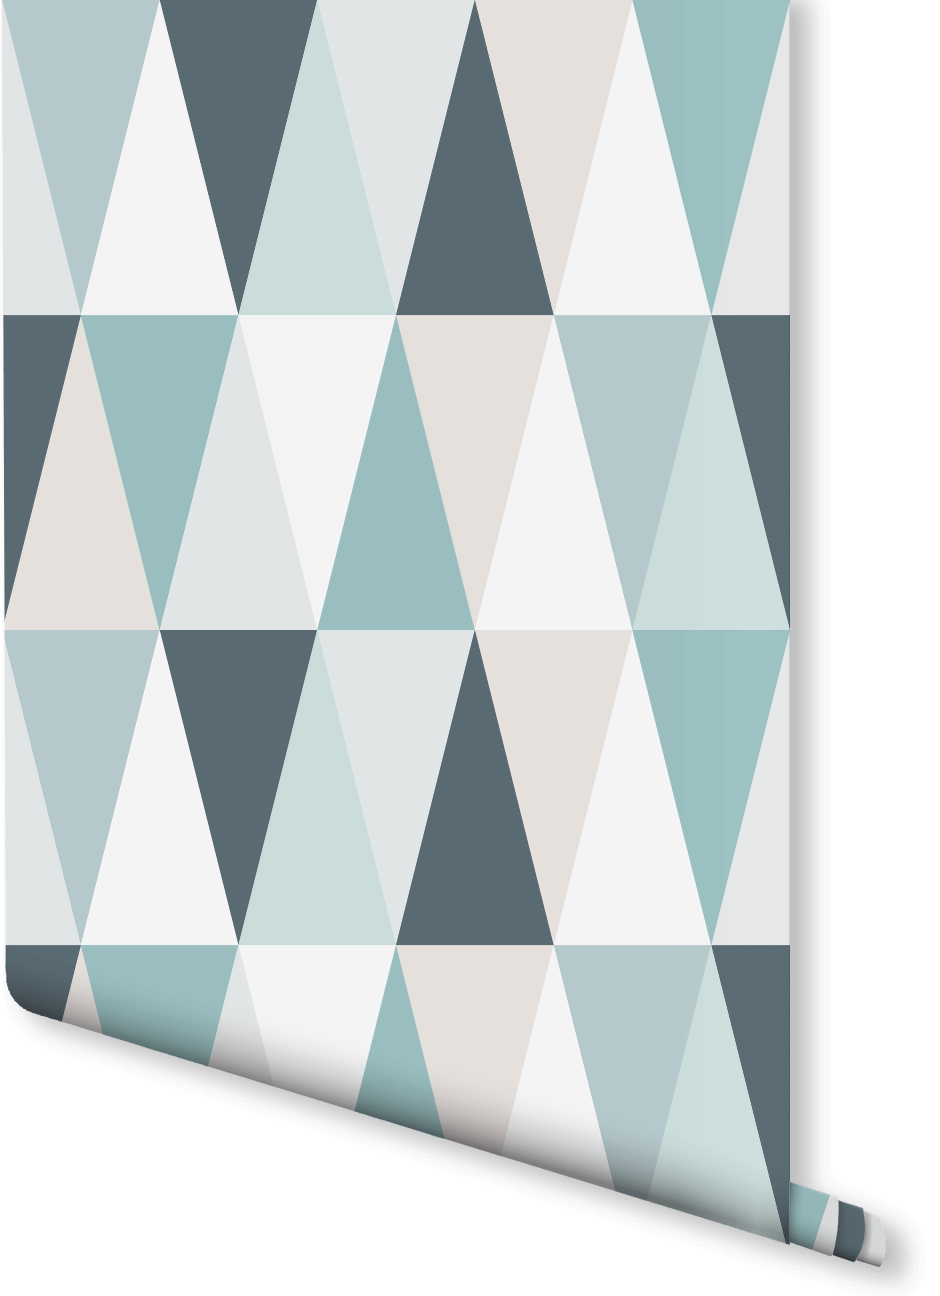 After The Scandi Look In Your Home This Geometric Wallpaper Design Features A Subtle Yet